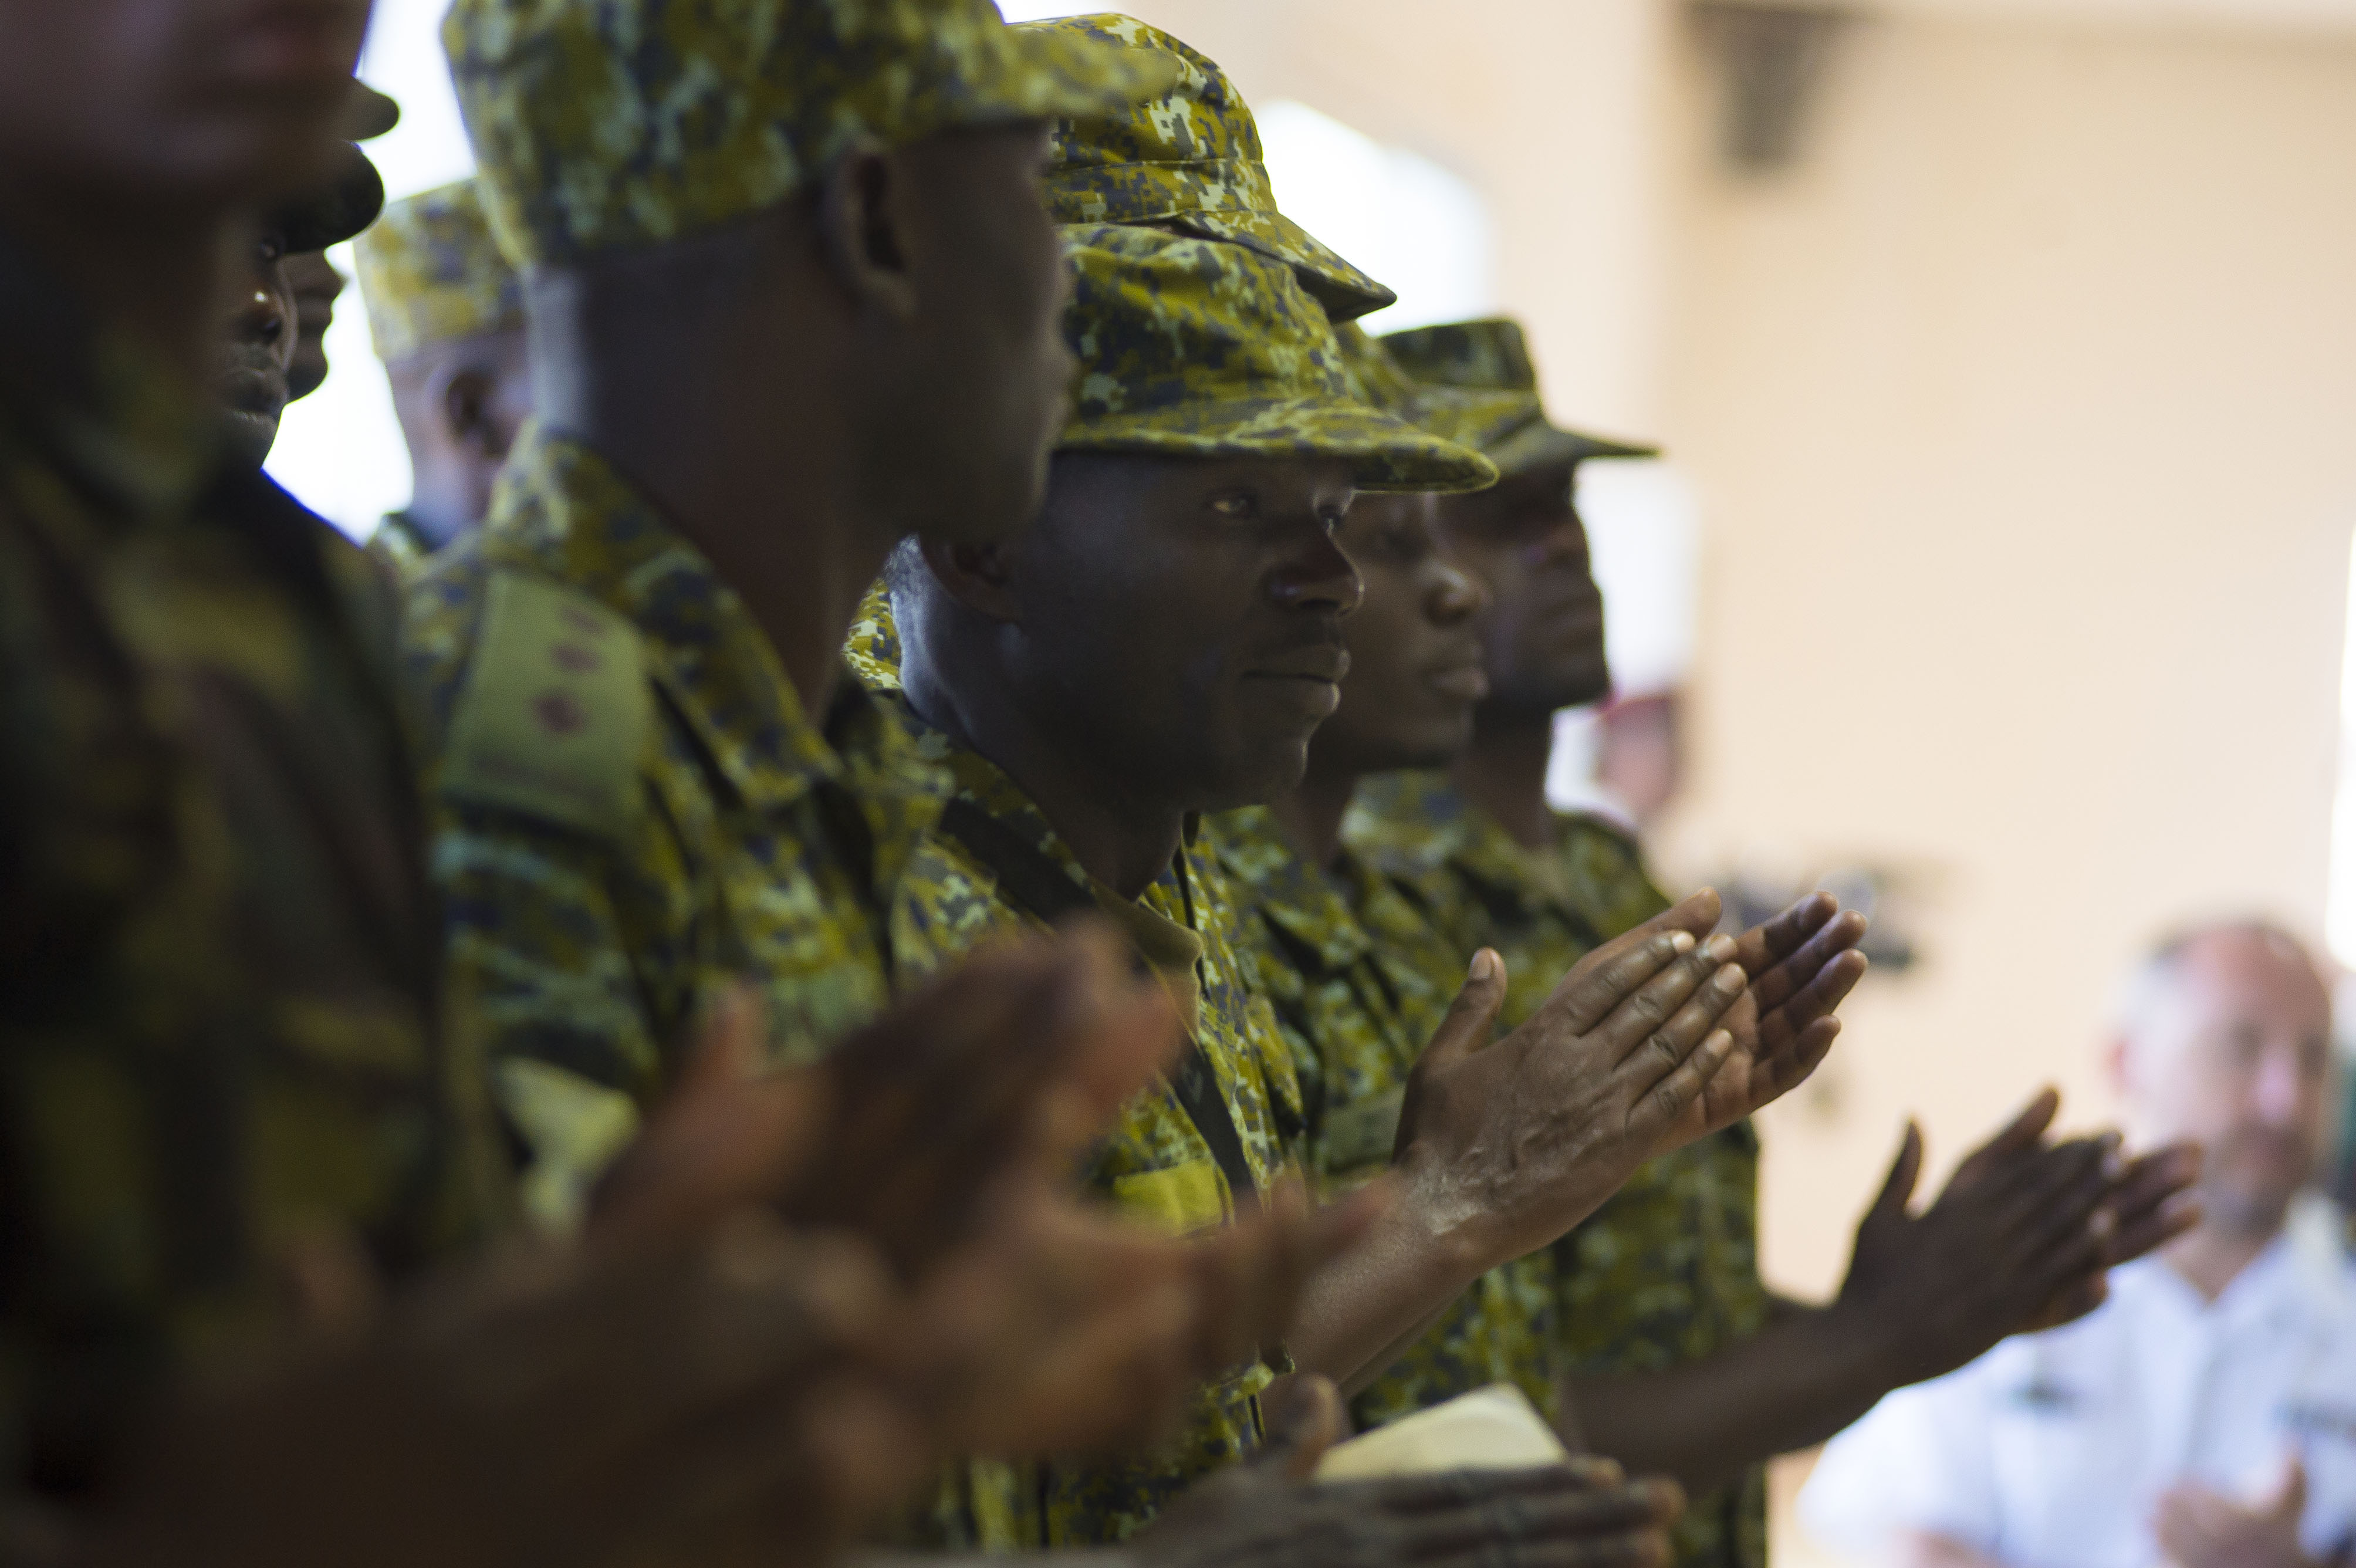 DJIBOUTI, Djibouti (Feb. 8, 2017) - Uganda Marines attend the exercise Cutlass Express 2017 closing ceremony at the Djibouti Coast Guard base Feb. 8, 2017. Exercise Cutlass Express 2017, sponsored by U.S. Africa Command and conducted by U.S. Naval Forces Africa, is designed to assess and improve combined maritime law enforcement capacity and promote national and regional security in East Africa. (U.S. Navy photo by Mass Communication Specialist 3rd Class Robert Price/Released)